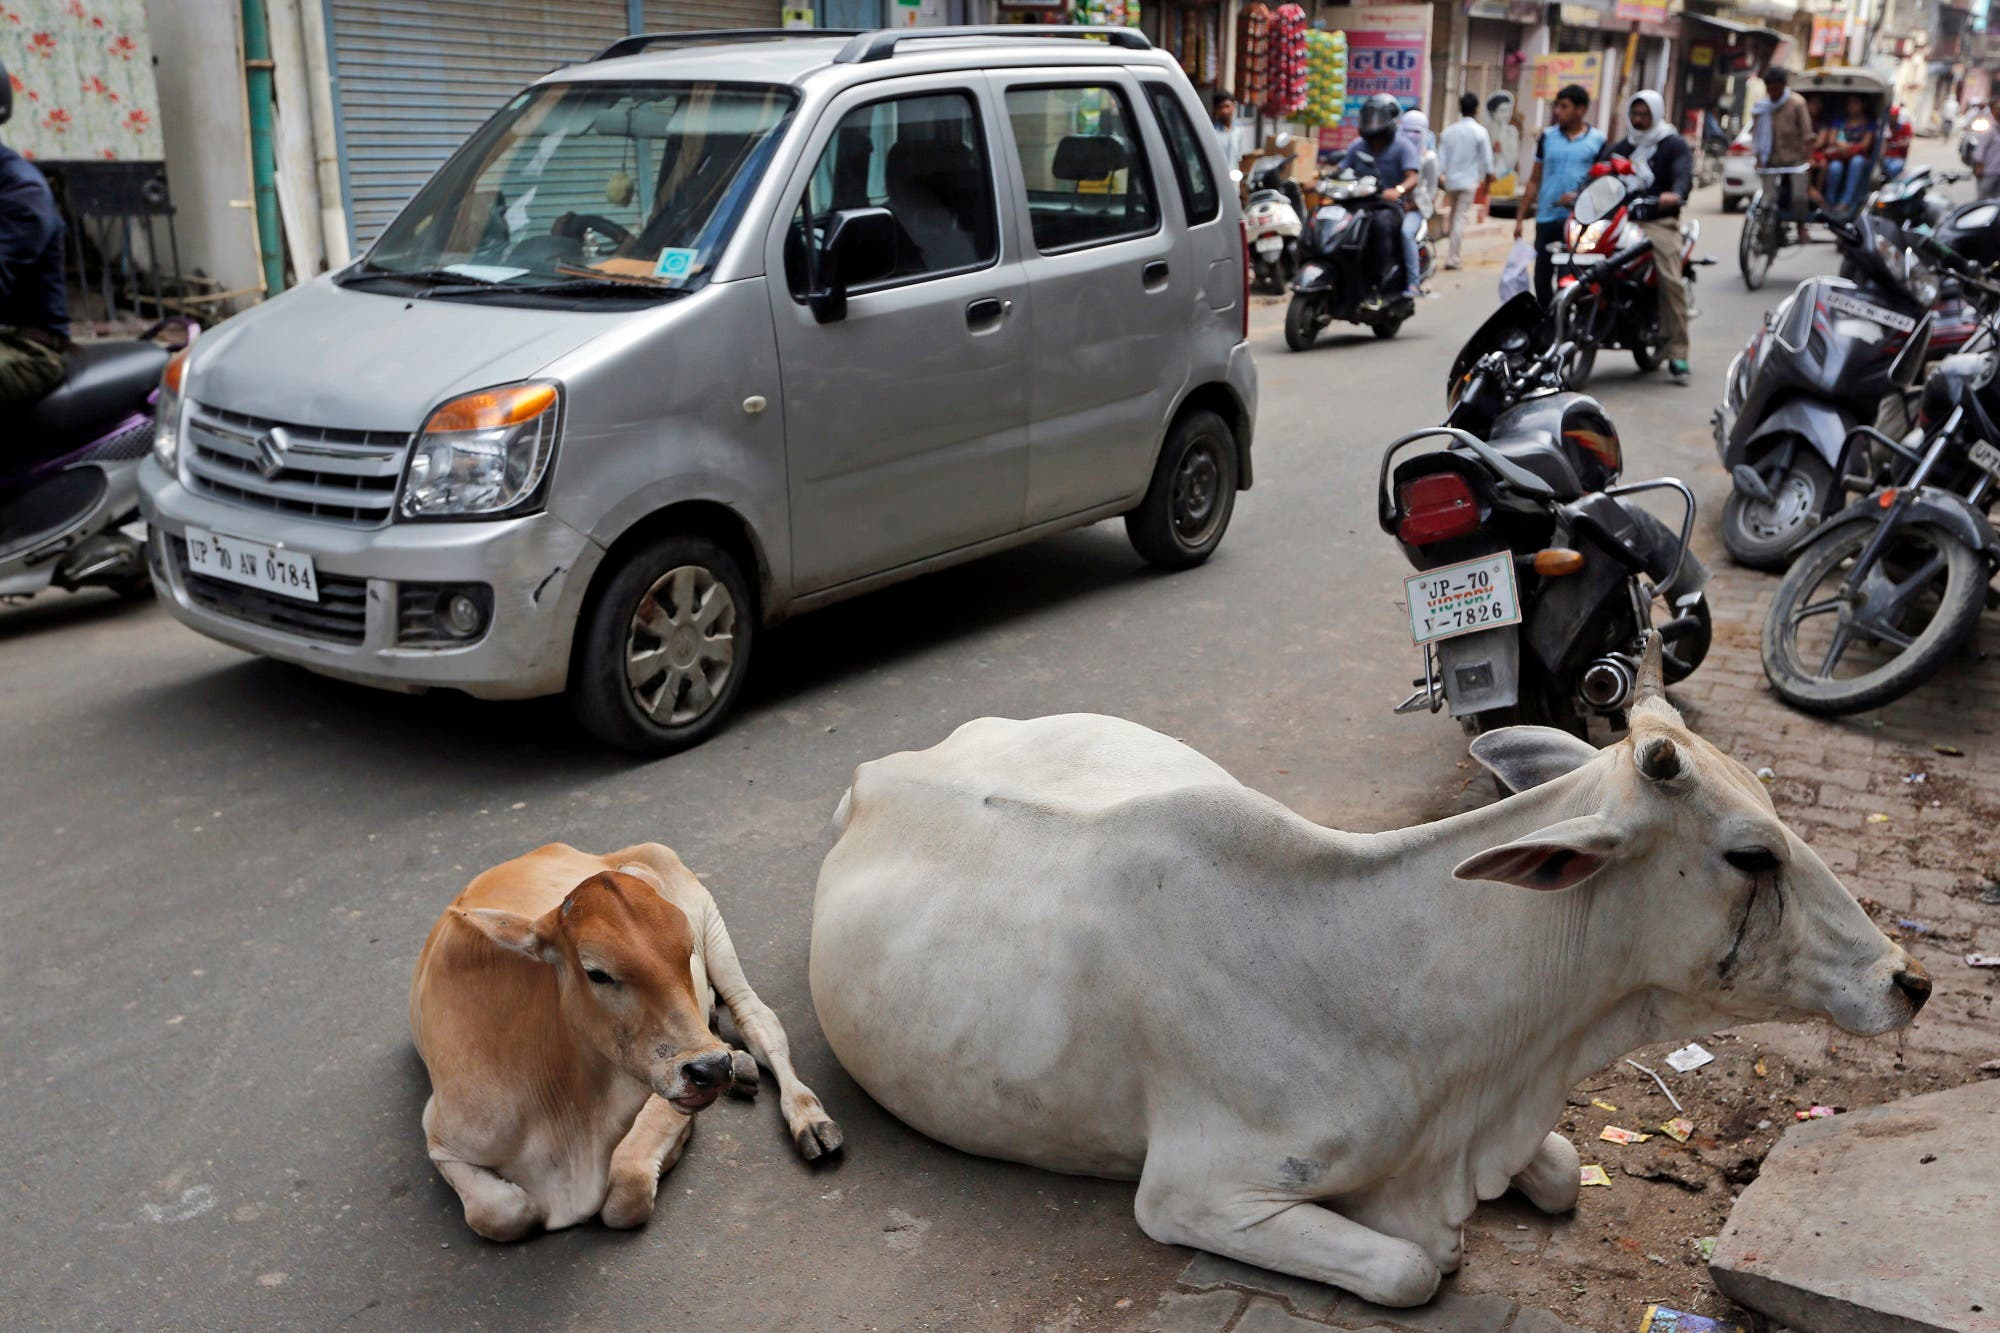 Stray cows rest on a road in Allahabad, India, on May 29, 2017. (AP)